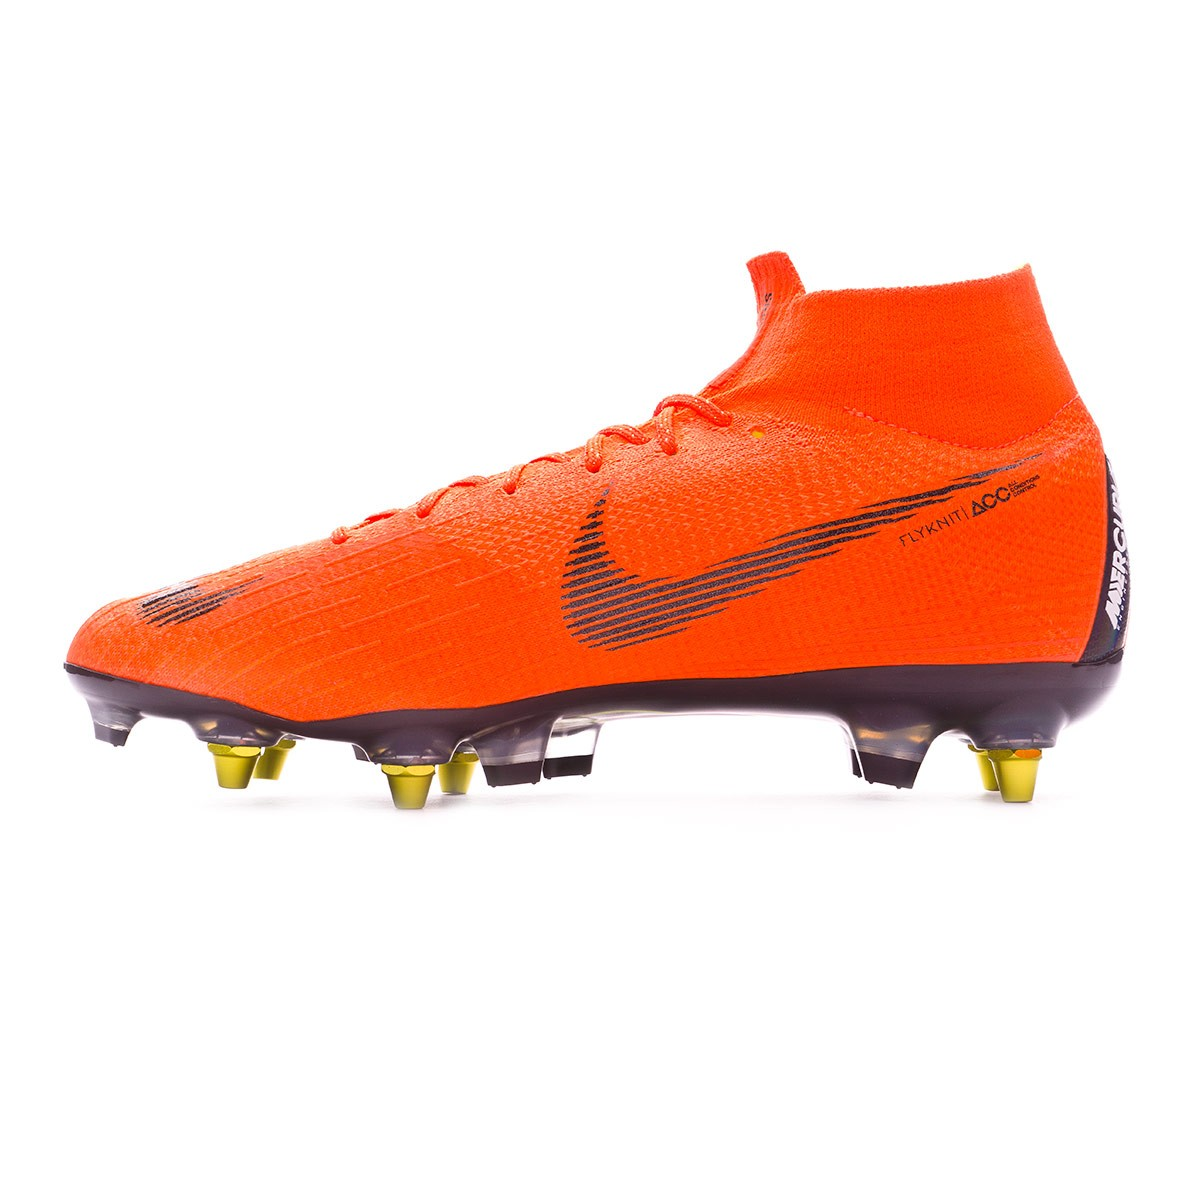 new arrival 3668b 03d8f Boot Nike Mercurial Superfly VI Elite SG-Pro Anti-Clog Total orange-Black-Volt  - Football store Fútbol Emotion